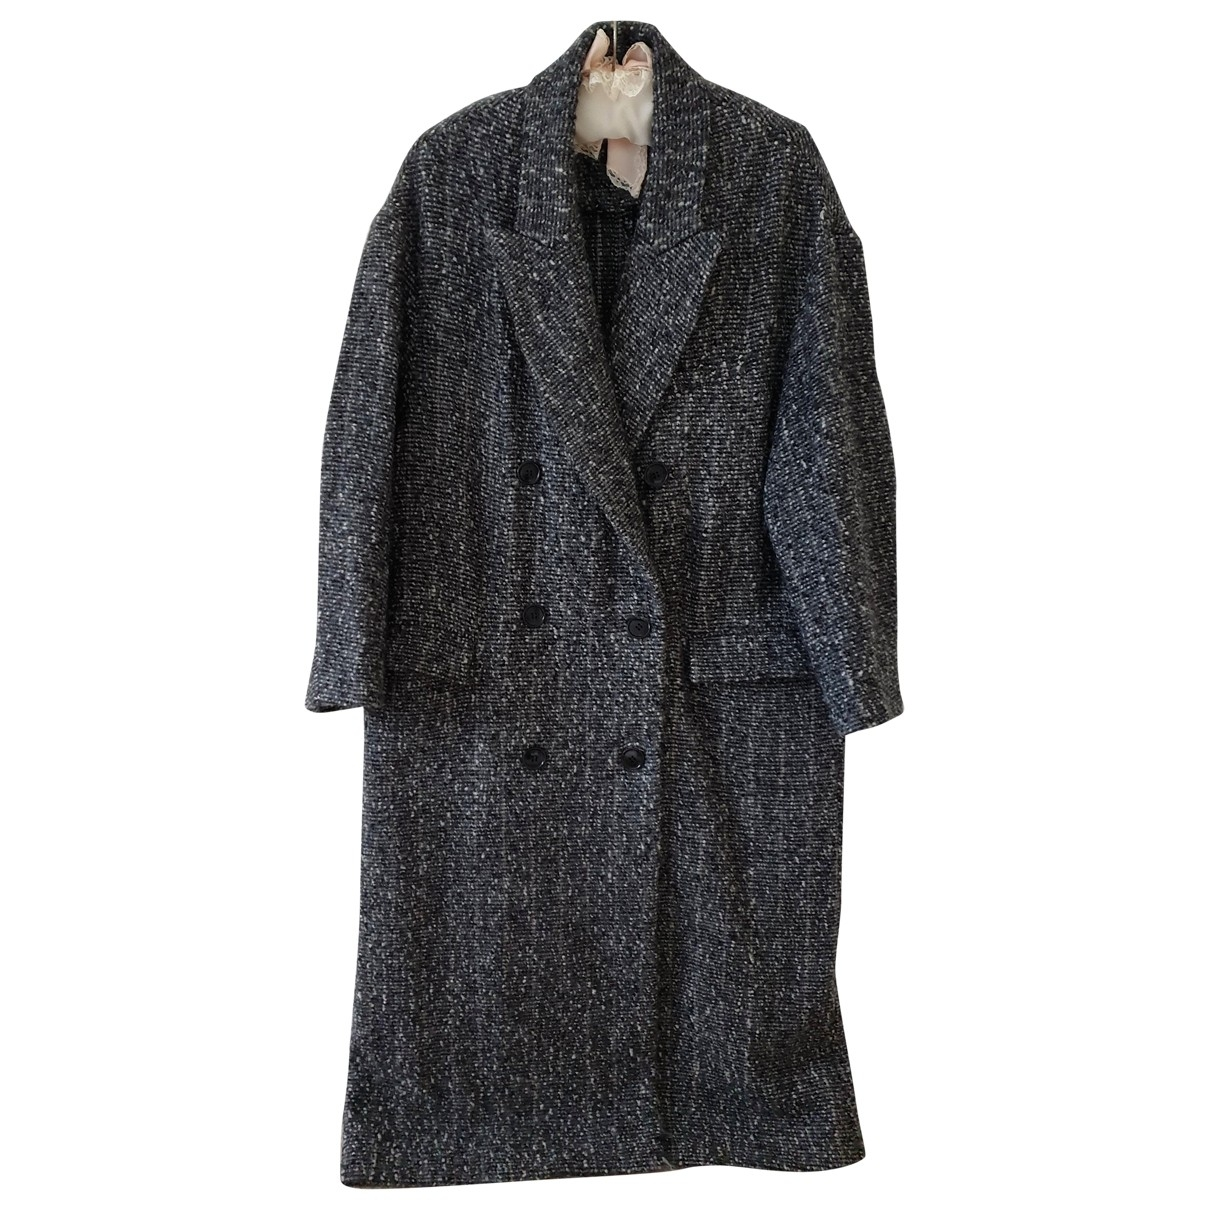 Isabel Marant \N Grey Wool coat for Women 36 FR